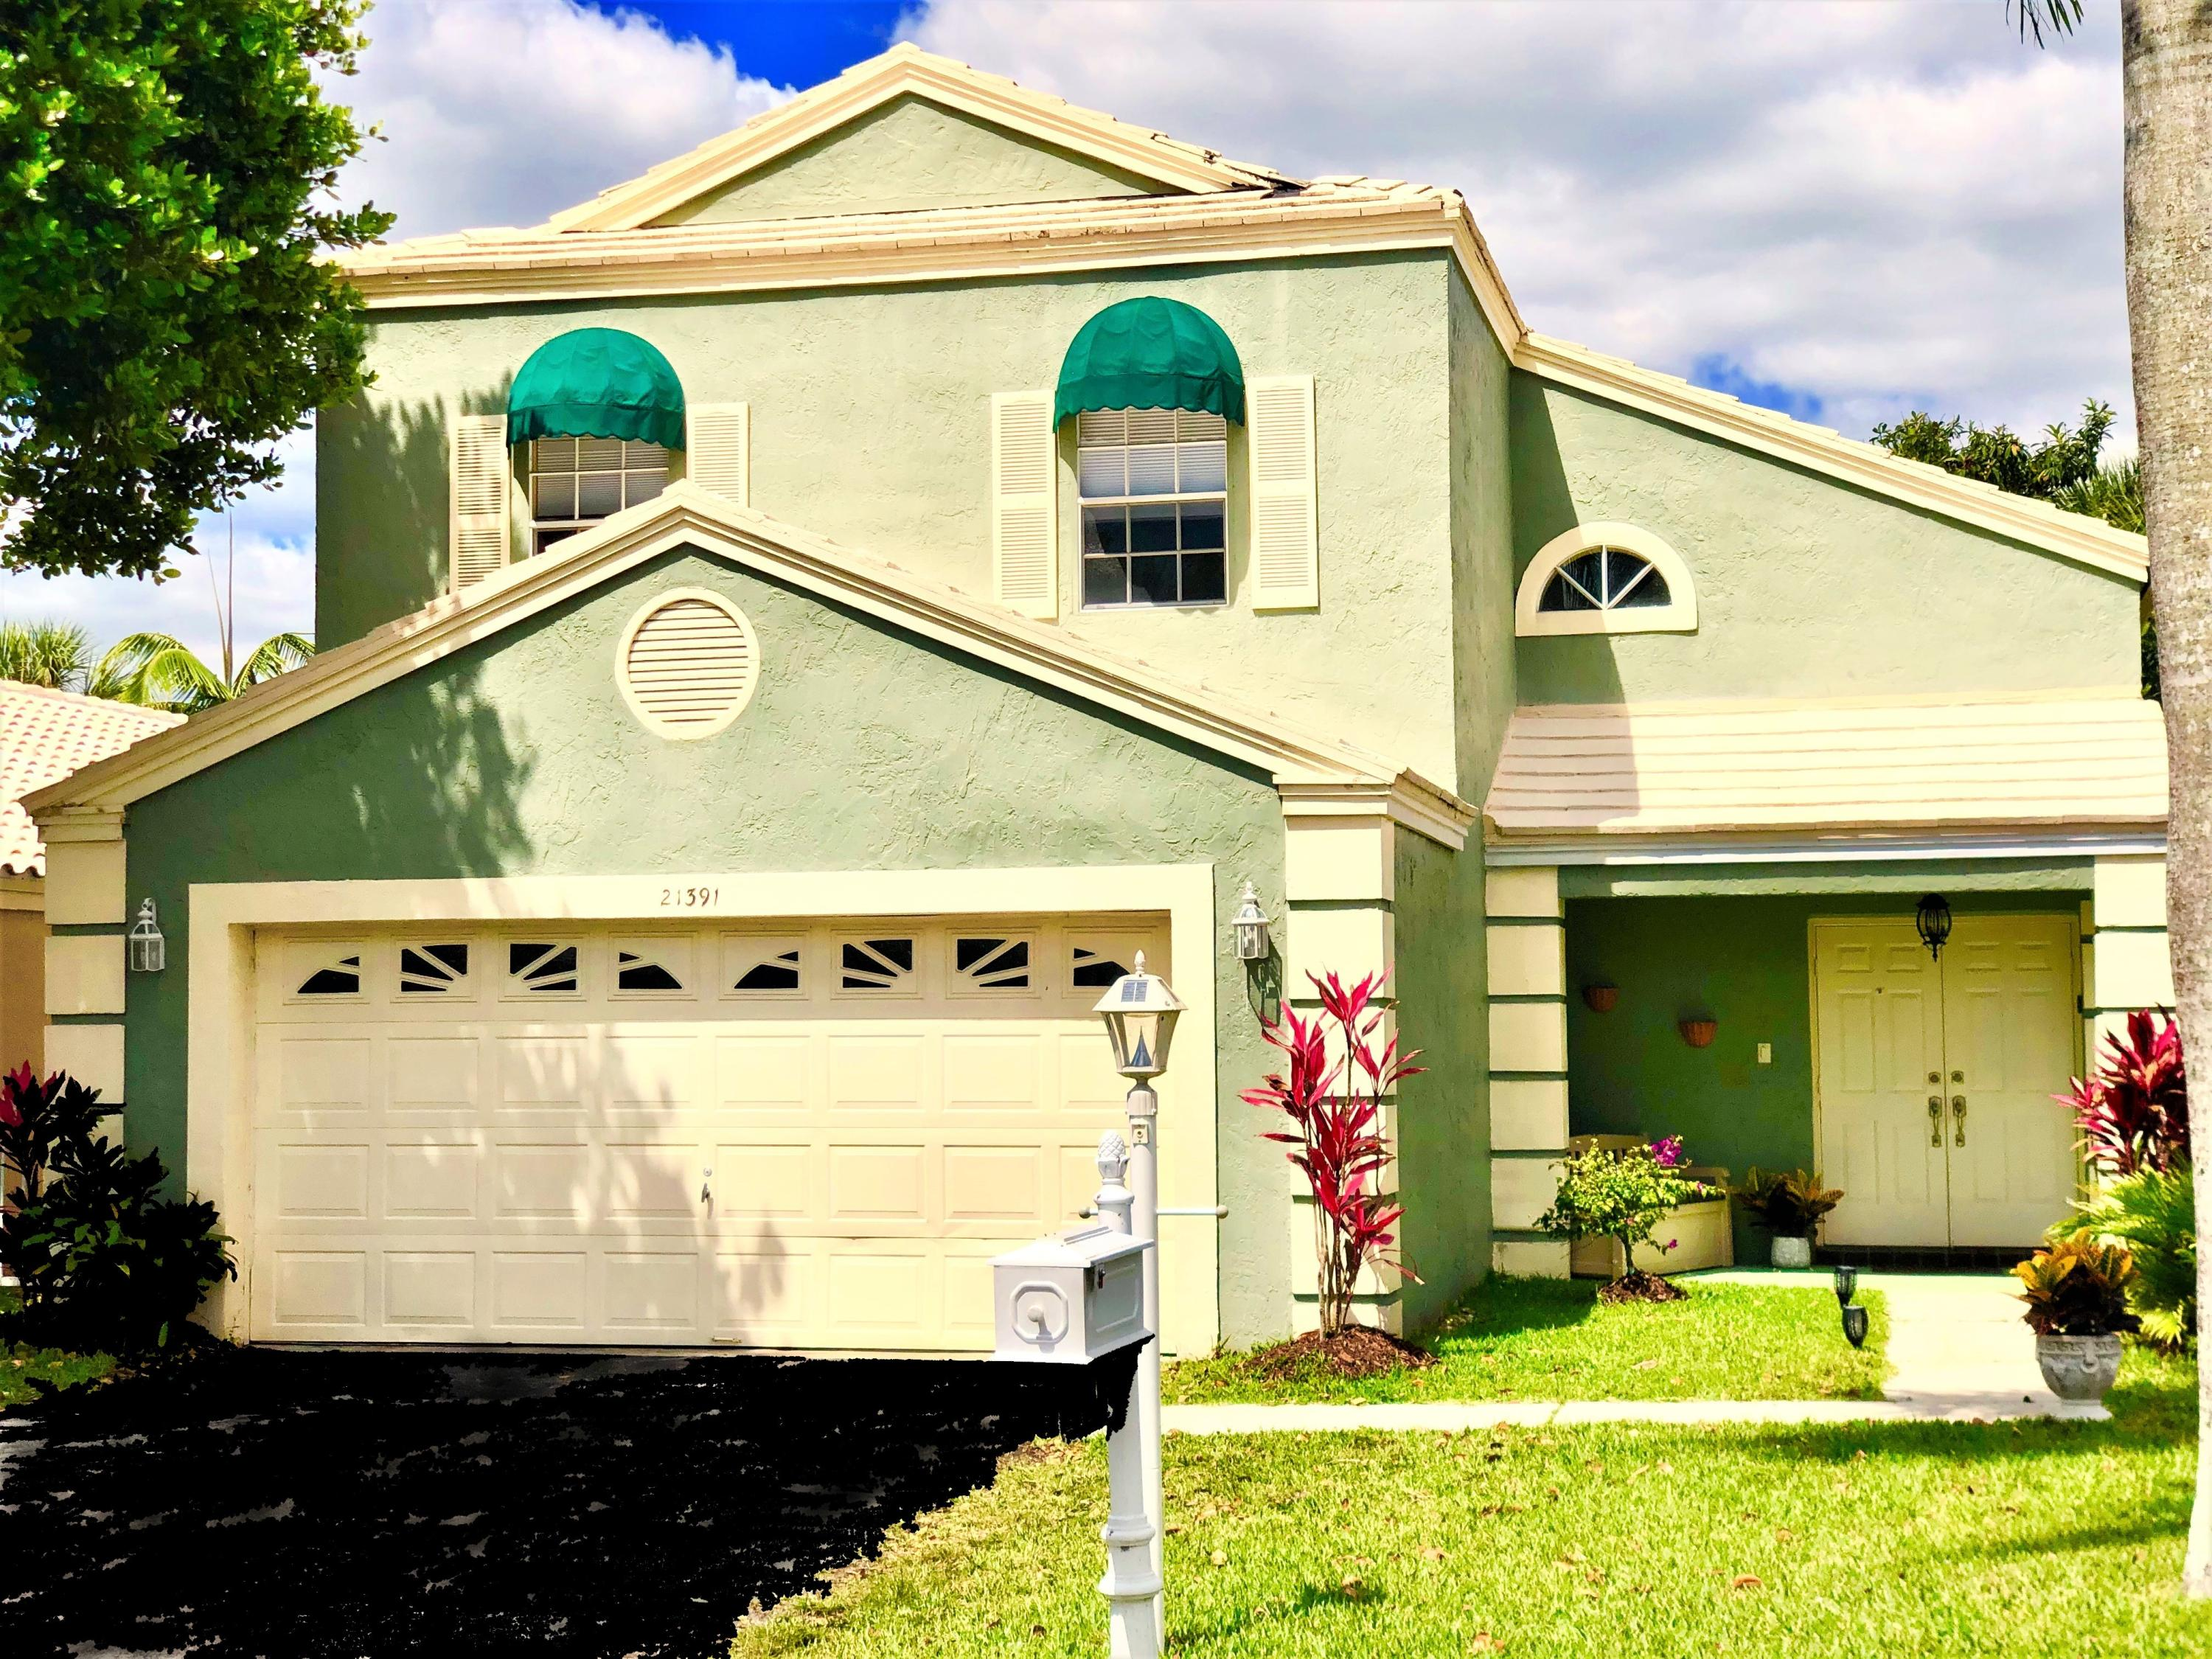 A Rated Schools, Everglades Views w/no rear neighbors, Updated: Kitchen; S.S. Appliances, Glazed Birch Easy Close Cabinets, Granite Counters w/ Island & Baths: Toilets, Master Walk-in Glass Door Shower and Closet, Granite Vanities, Large Garage, Low HOA Dues, $205 mos. includes nearby rec center, No Equity Membership, Priced to Sell, DON'T MISS THIS ONE!!